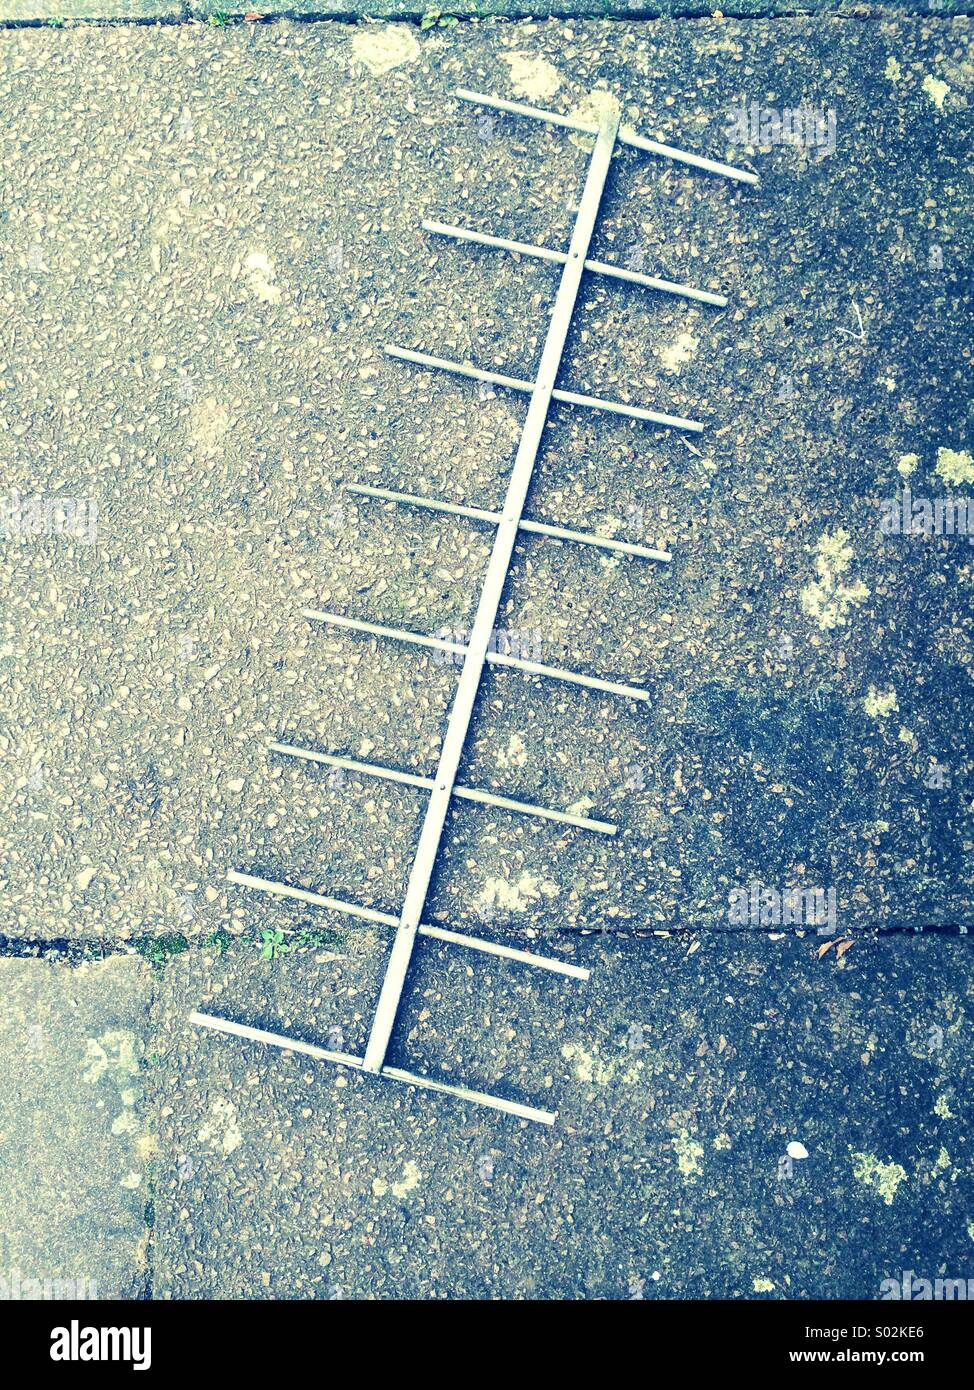 TV arial laying on a pavement, abstract - Stock Image